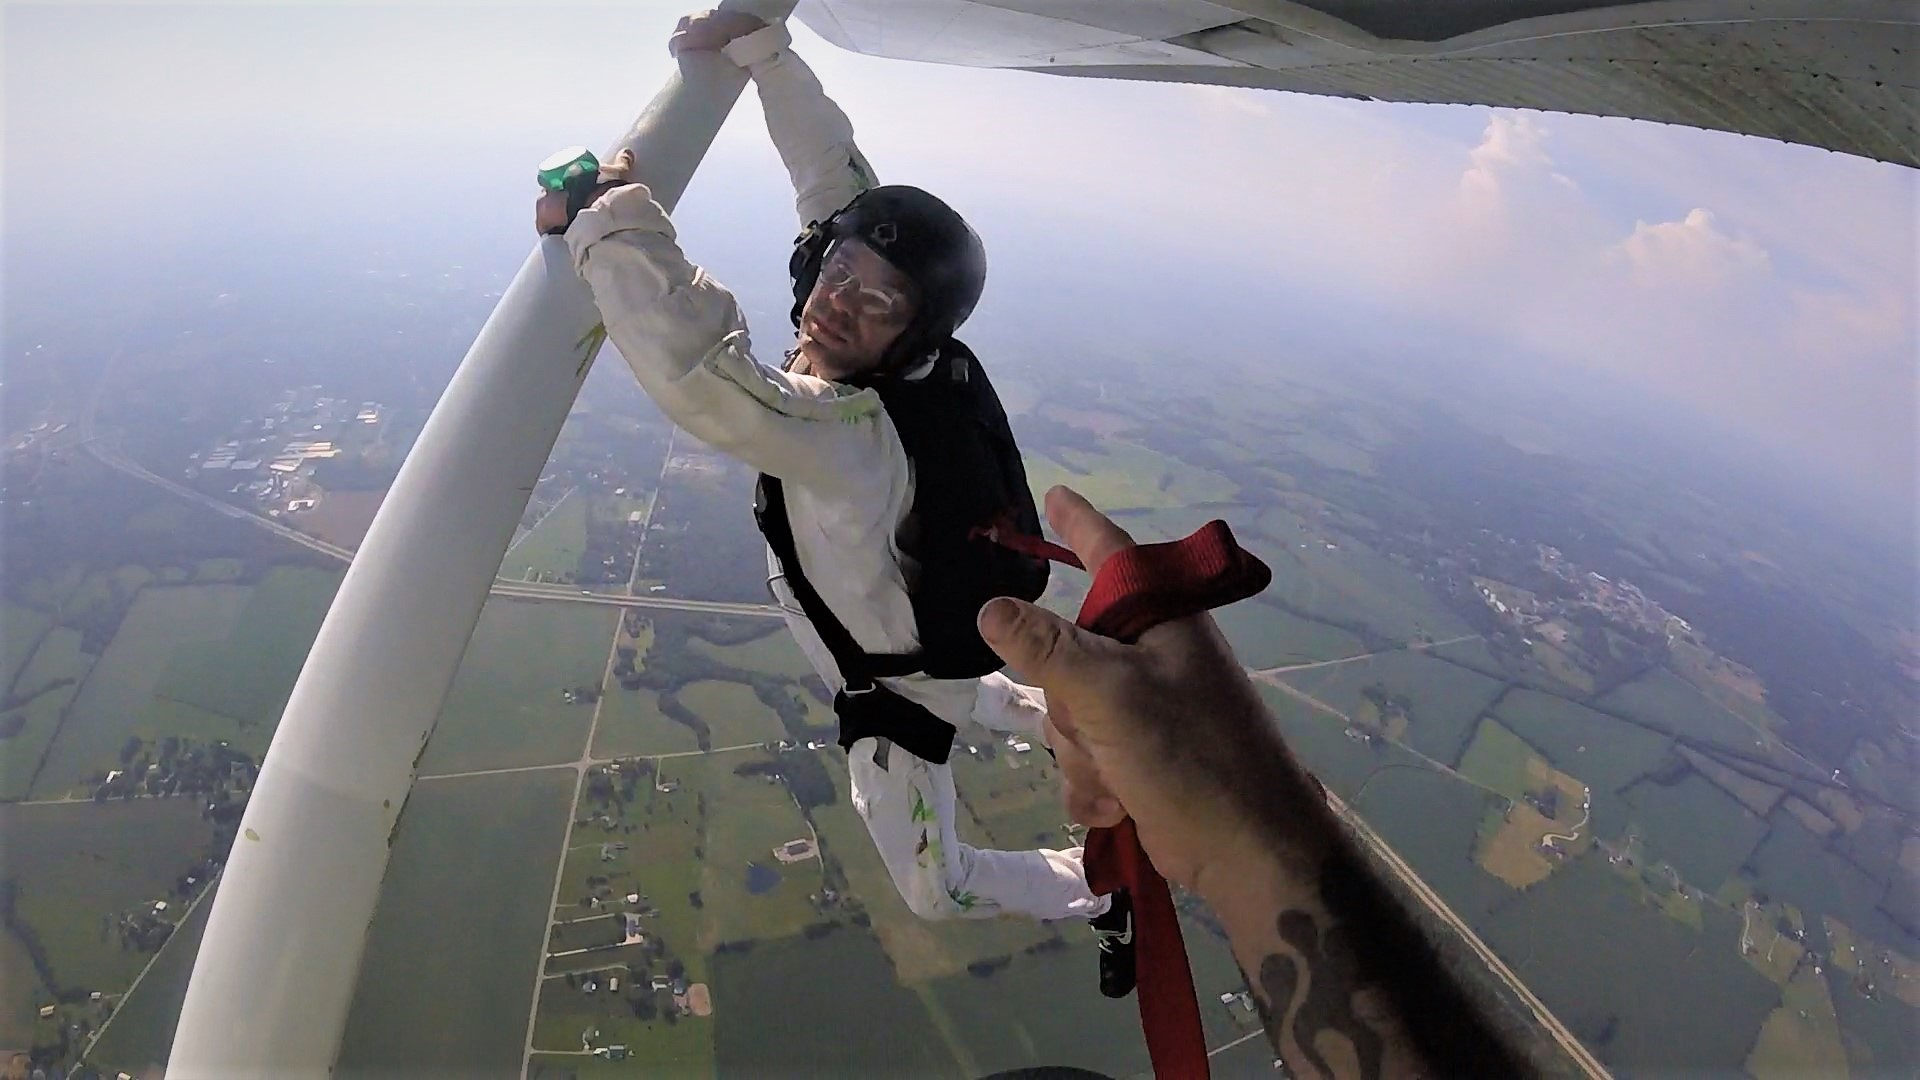 Static Line Course | Skydive Greene County